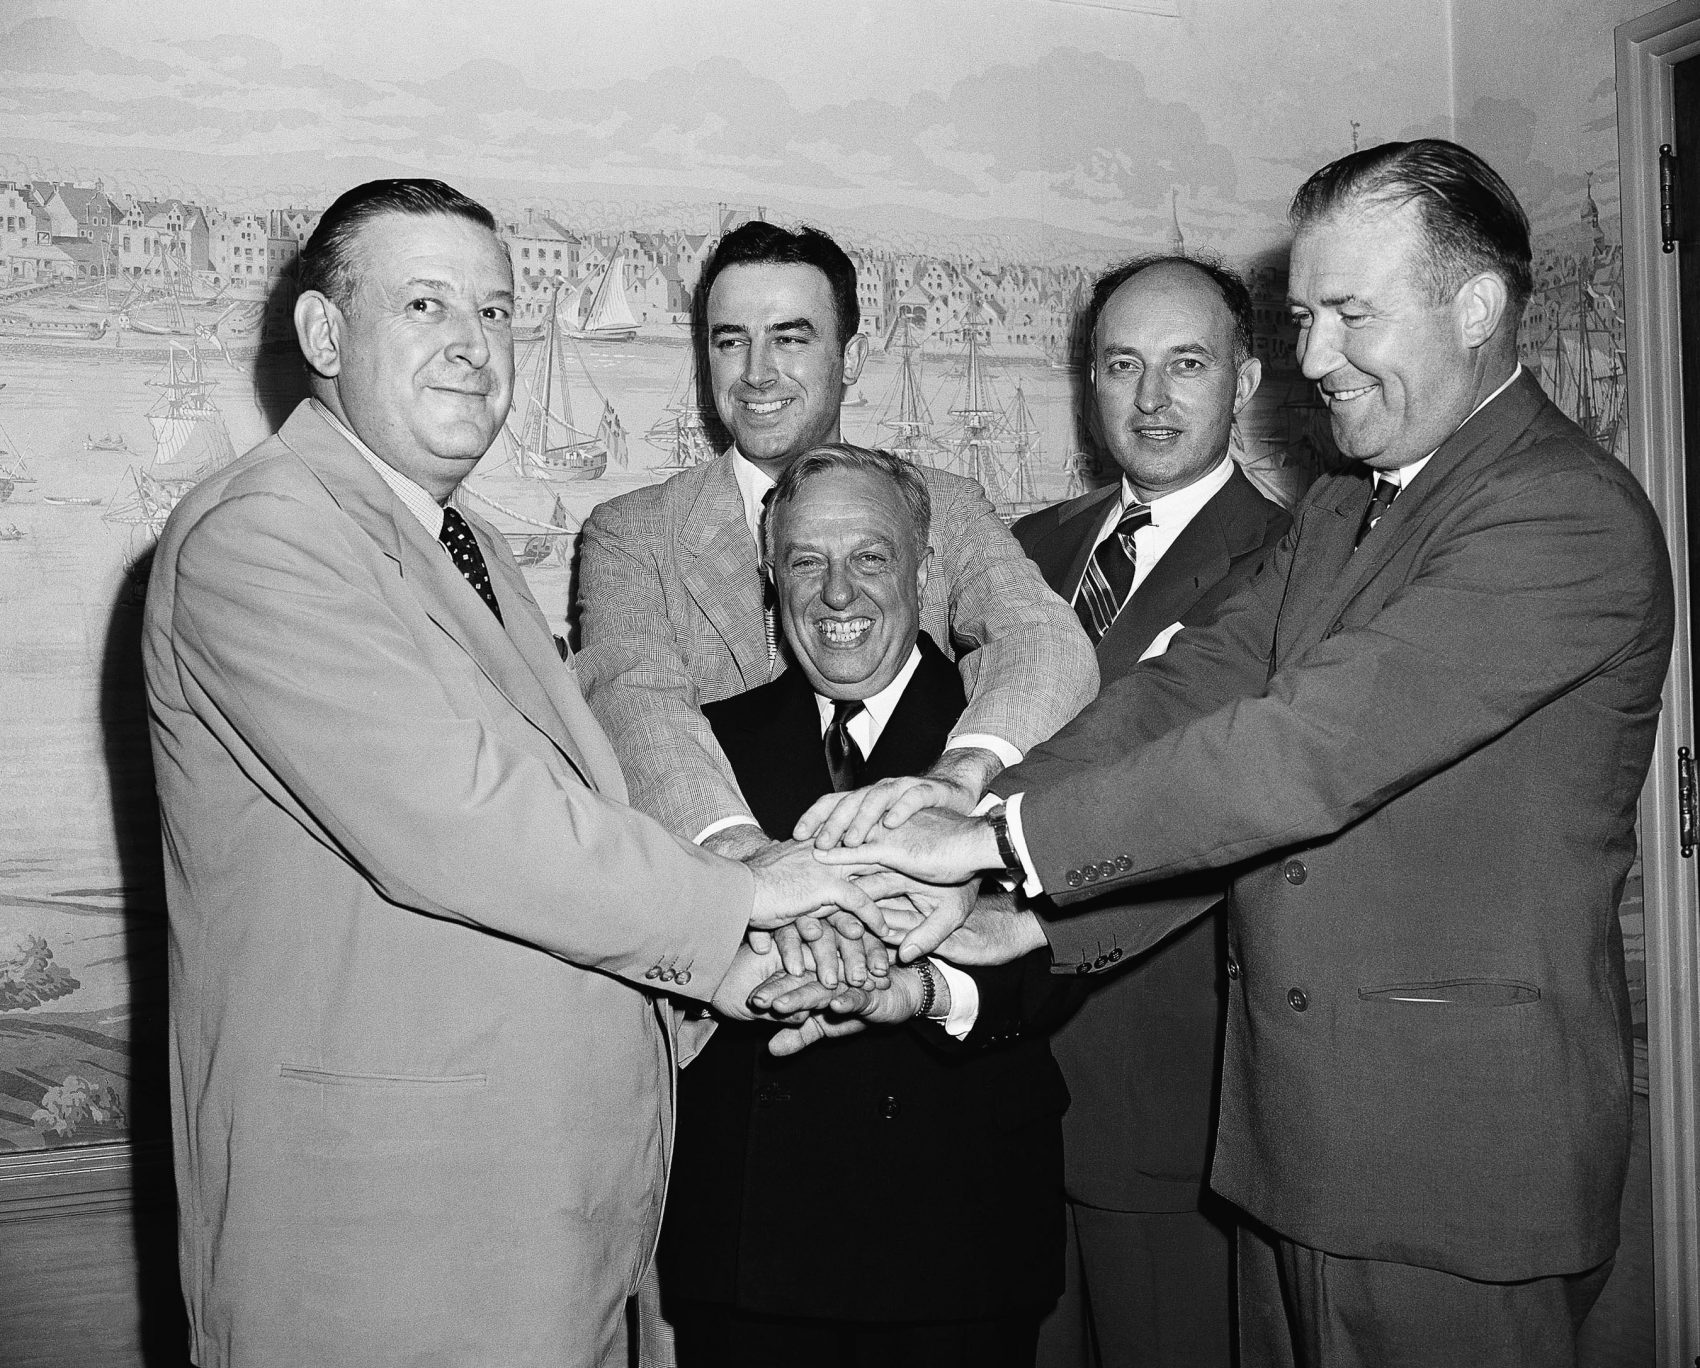 Leo Ferris (second from left) and representatives of the NBL and BAA shake hands after agreeing to a merger in 1949. (John Lent/AP)